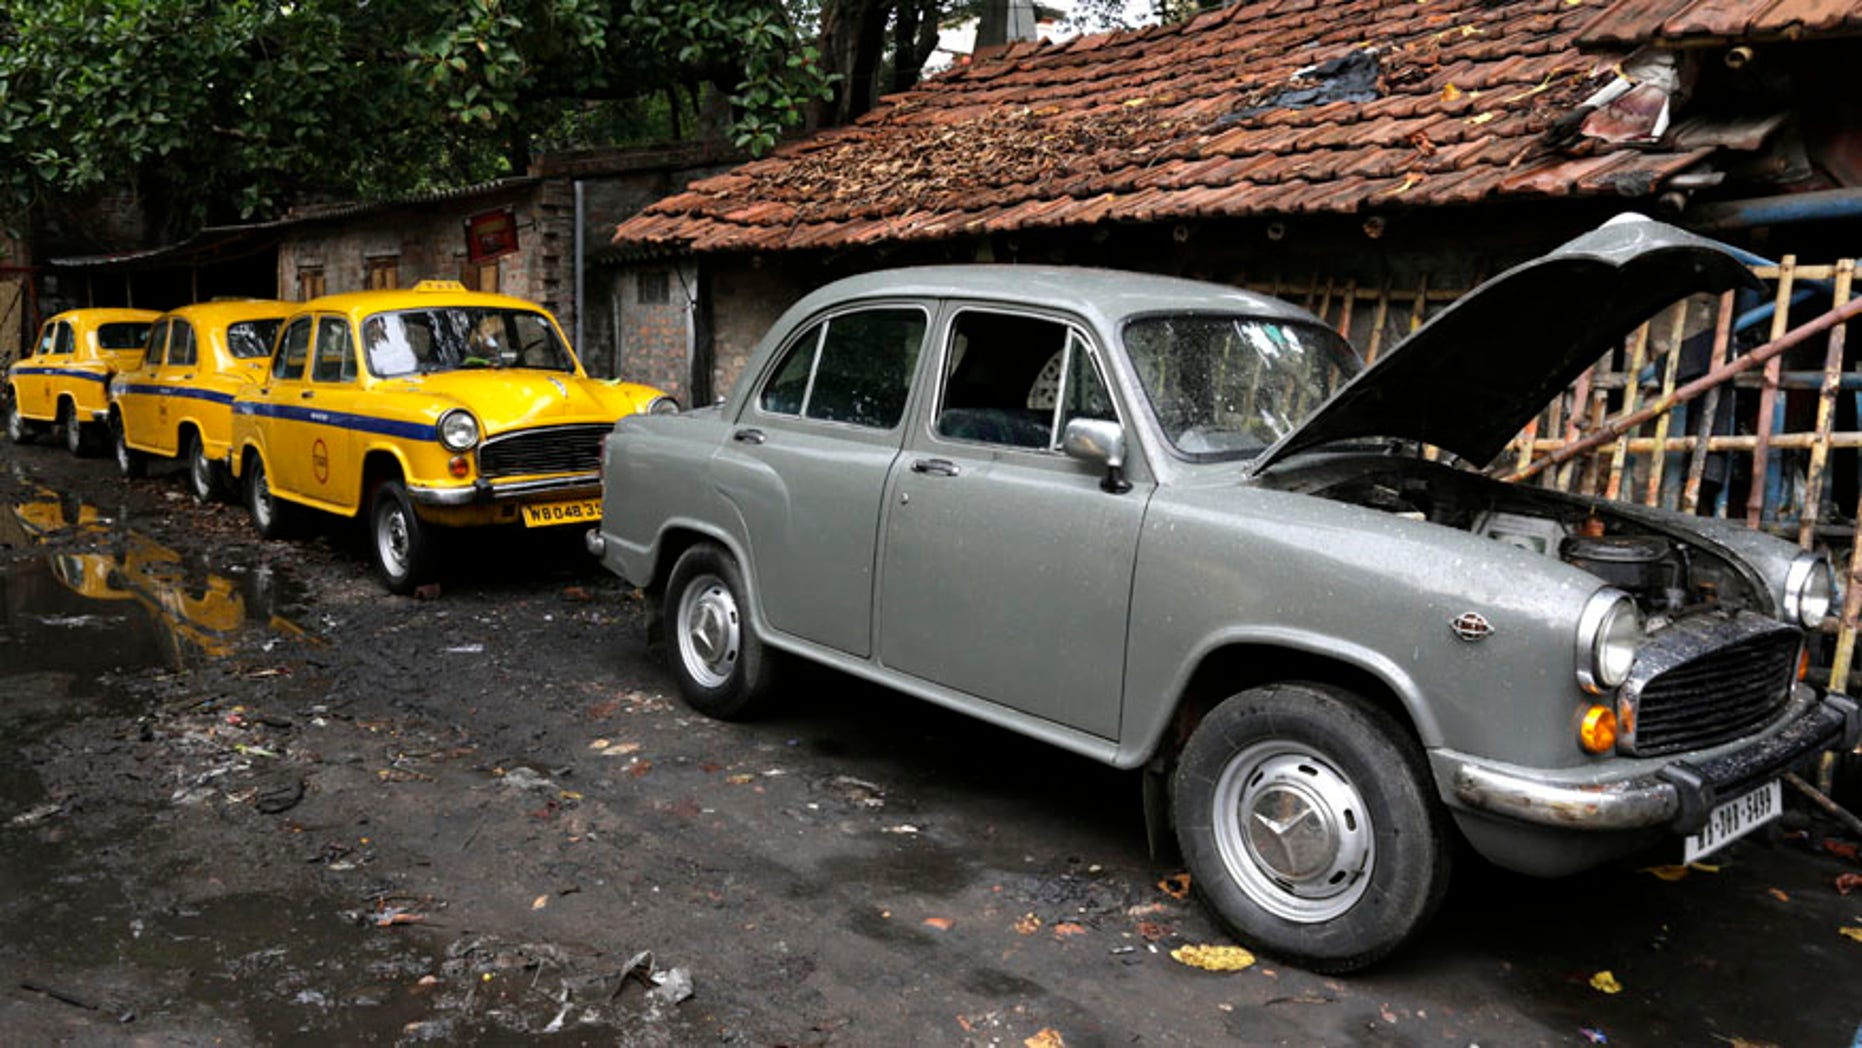 Ambassador cars, both taxis, in yellow and one private, are parked near a workshop for repairs in Kolkata, india, Monday, May 26, 2014. India's oldest car factory has abruptly suspended production of the hulking Ambassador sedan that has a nearly seven-decade history as the car of the Indian elite. (AP Photo/ Bikas Das)